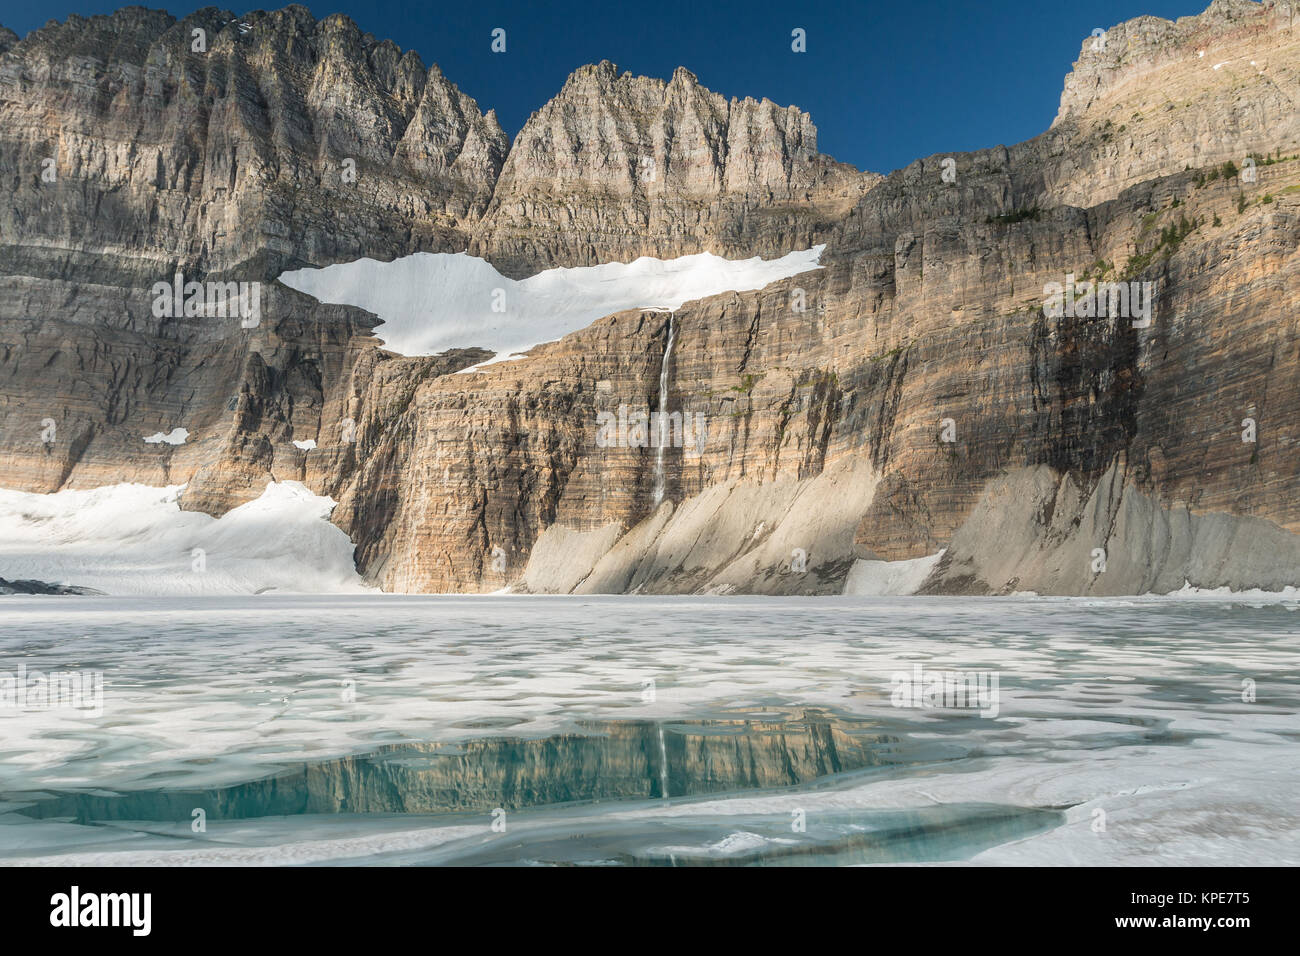 Frozen Upper Grinnell Lake and the Garden Wall in Glacier National Park, Montana - Stock Image